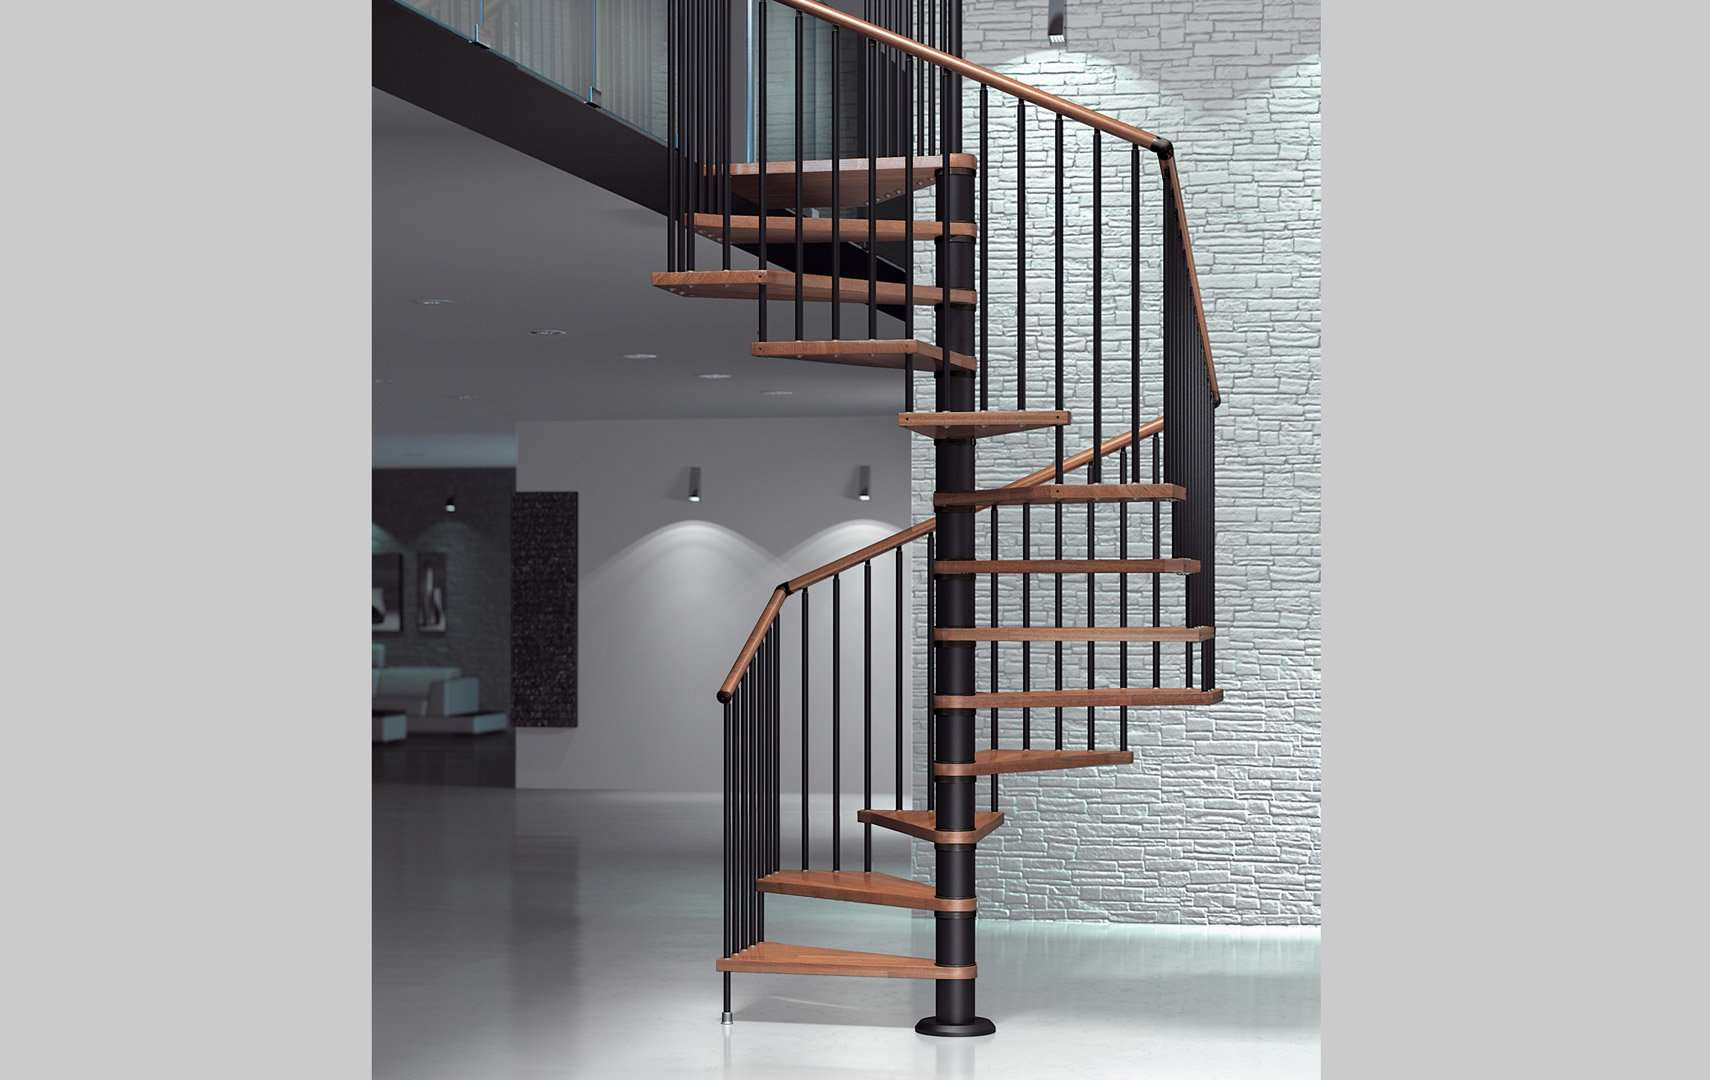 escalier helicoidal bois metal escalier helicoidal bois metal with escalier helicoidal bois. Black Bedroom Furniture Sets. Home Design Ideas